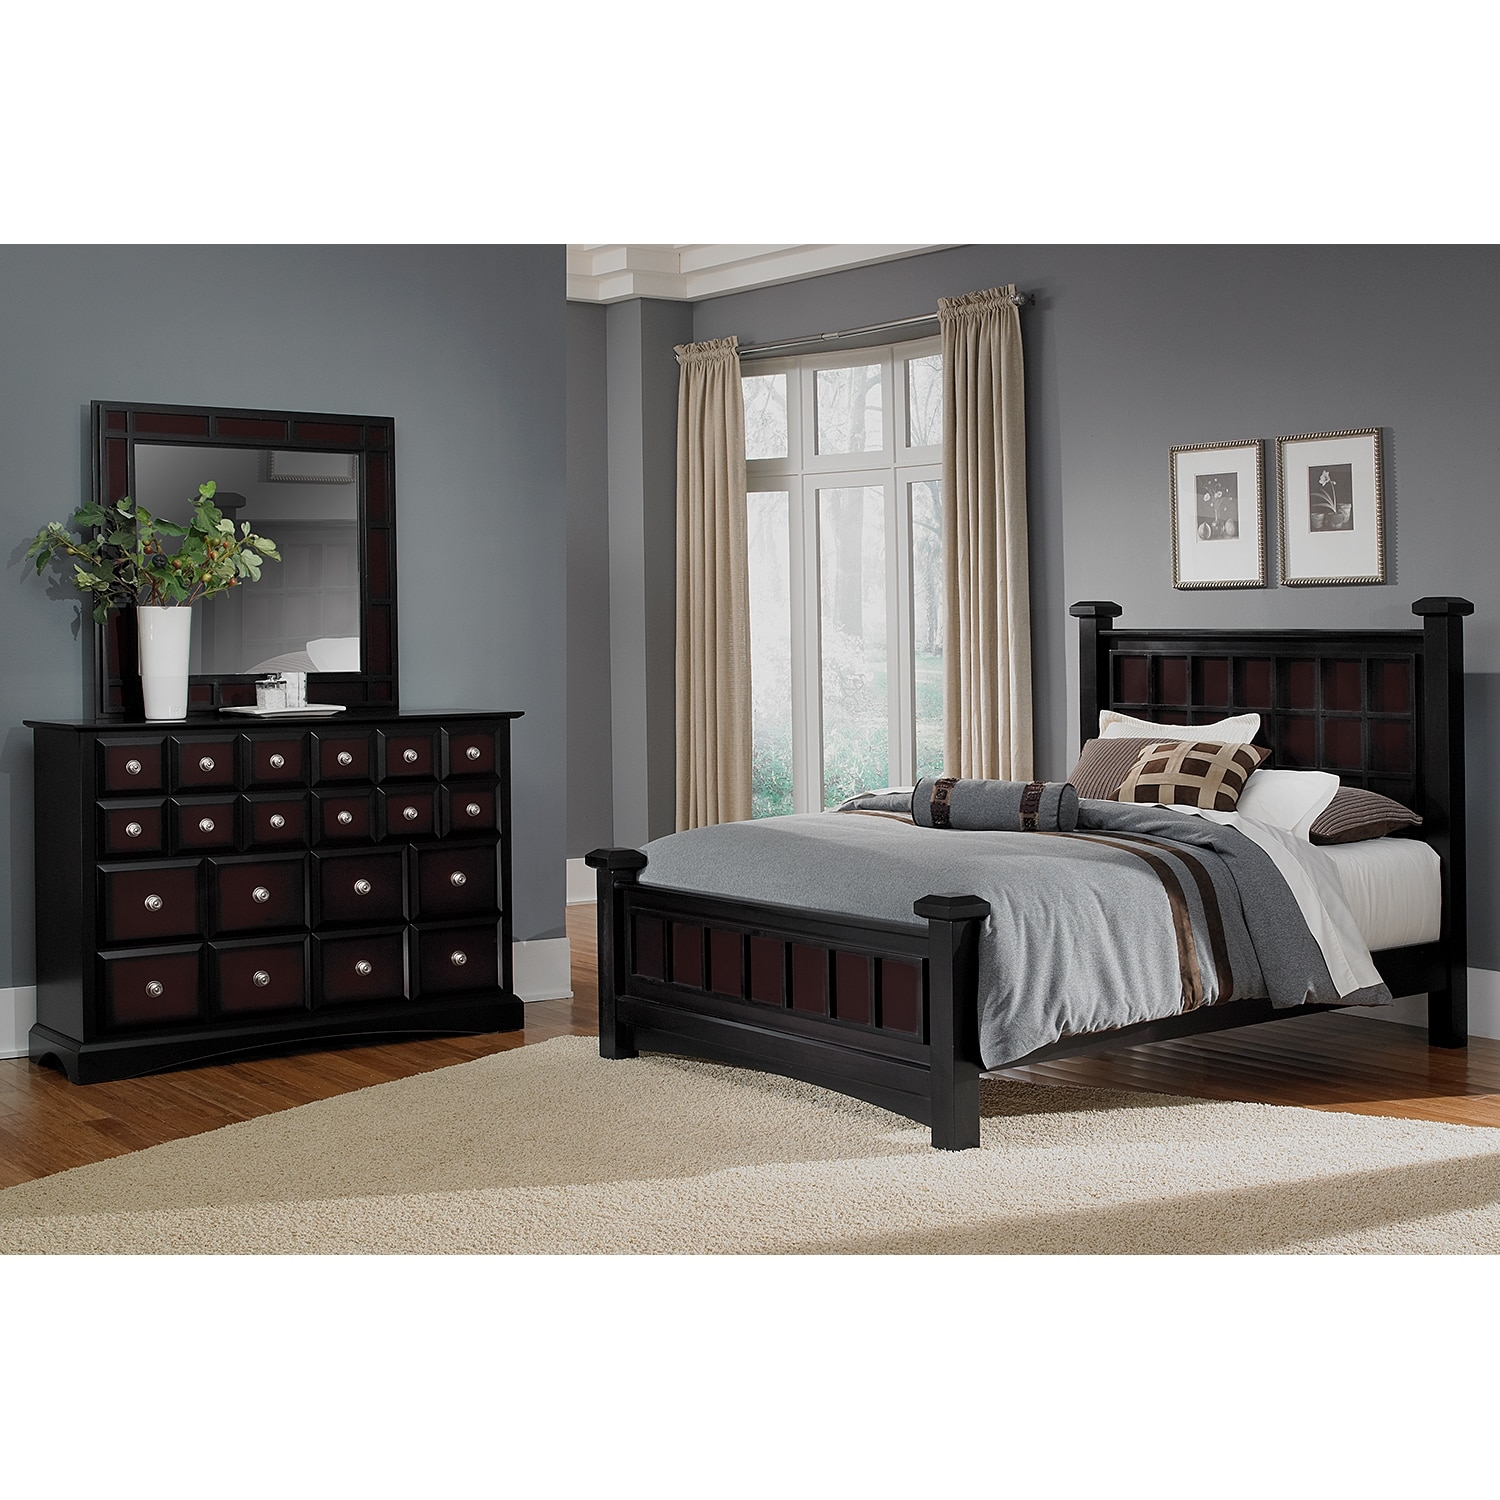 Winchester 5 Piece King Bedroom Set Black And Burnished